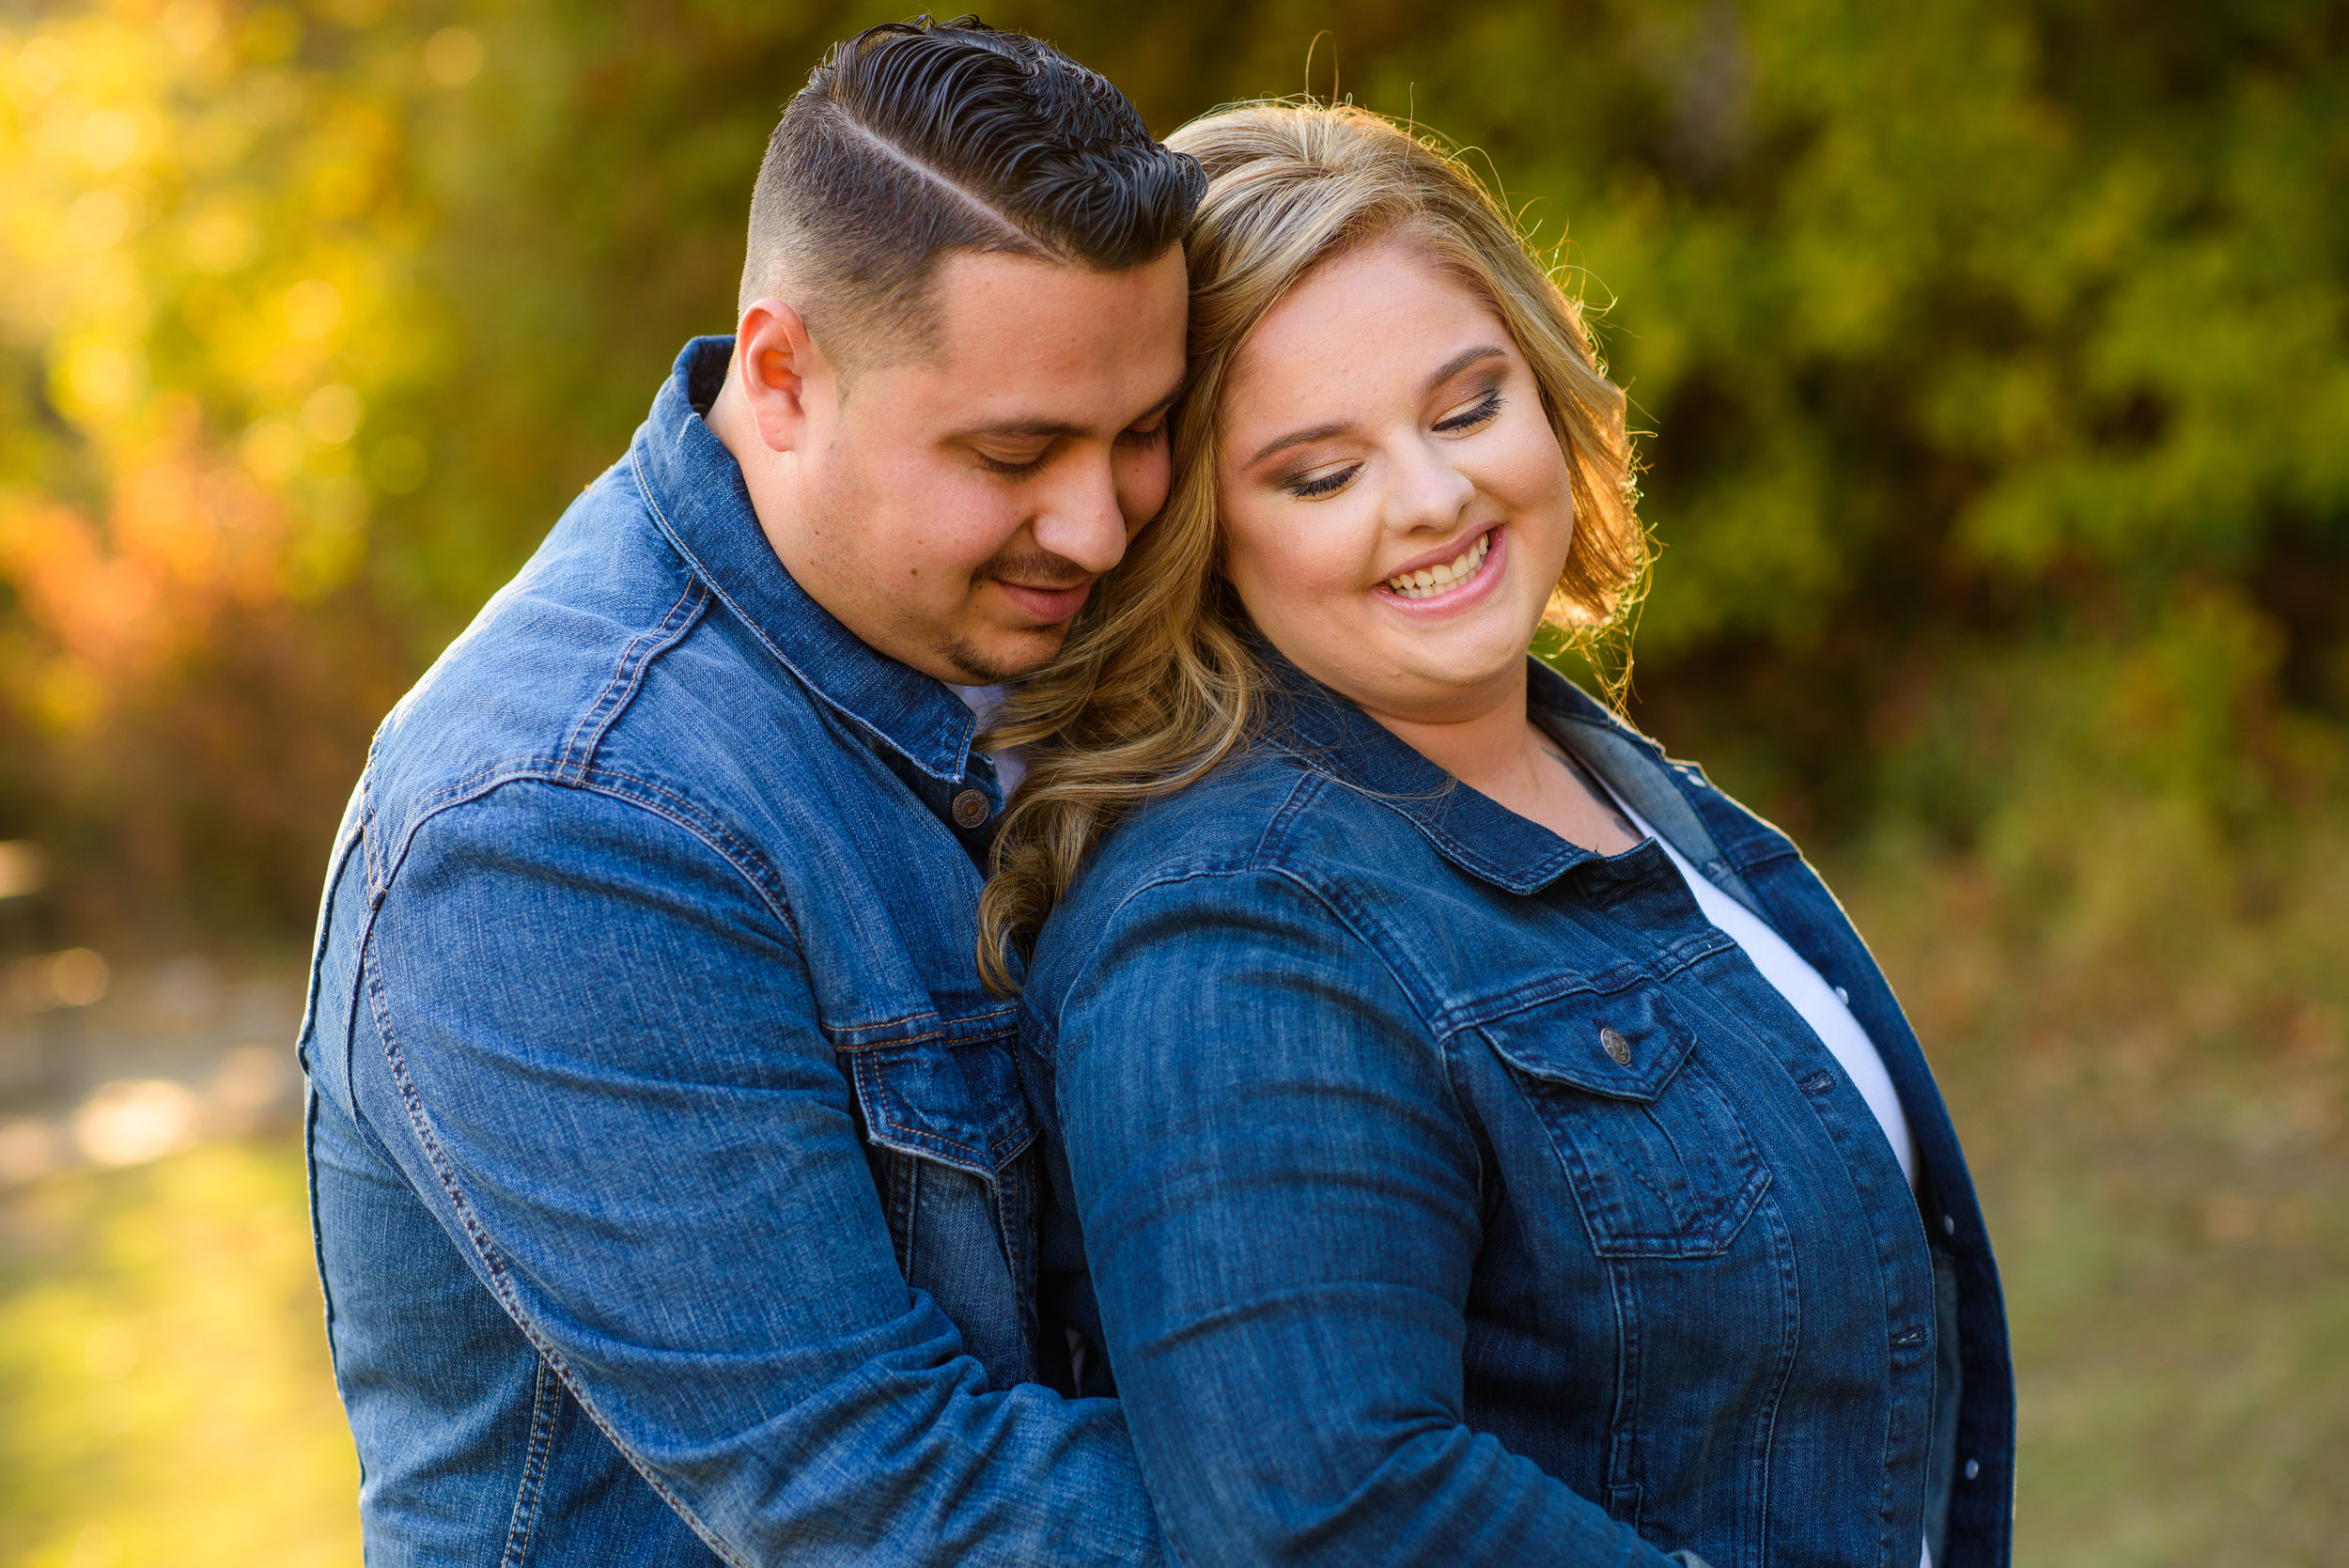 lynzie-javier-001-sacramento-california-engagement-wedding-photographer-katherine-nicole-photography.JPG